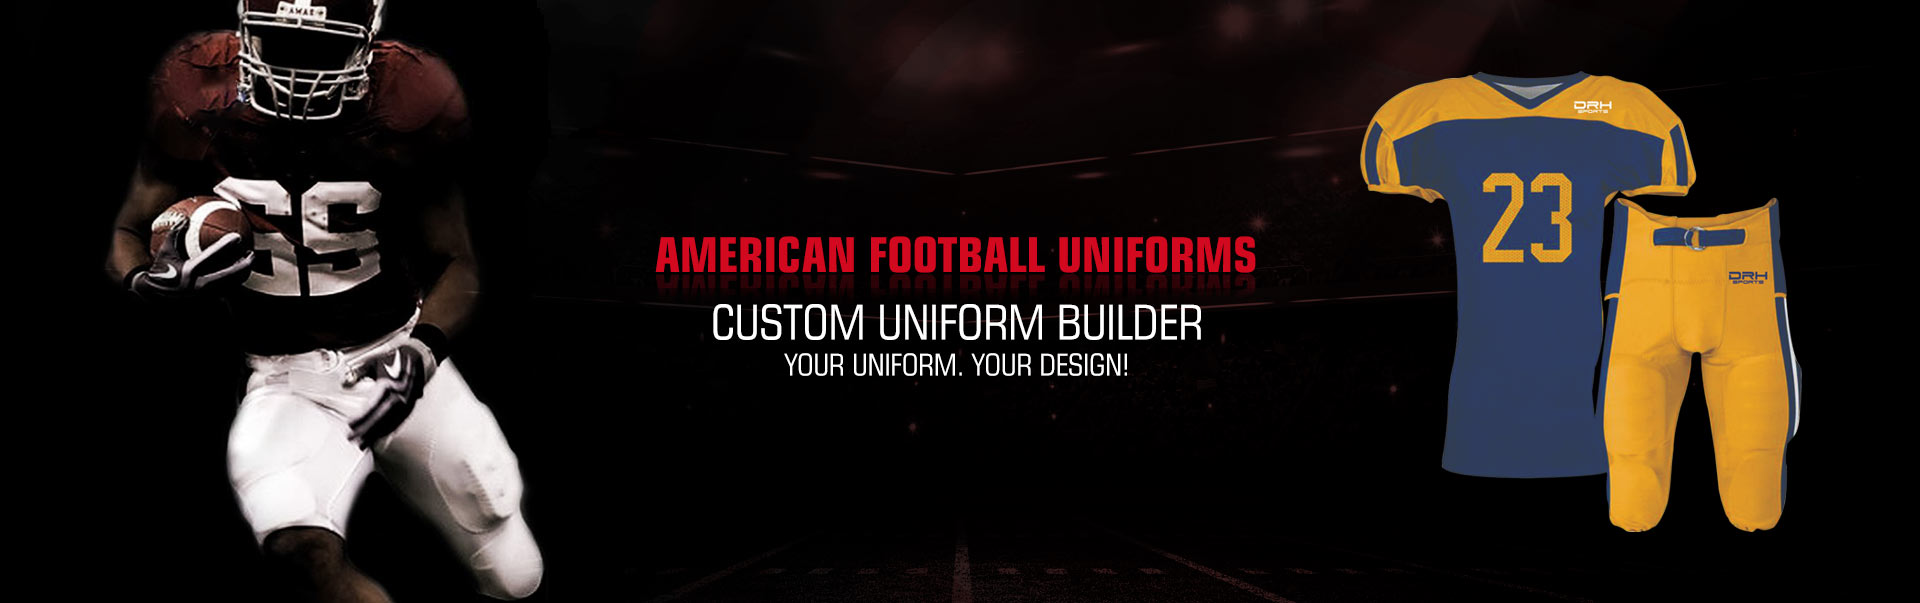 American Football Uniform Wholesaler, Suppliers in Noyabrsk